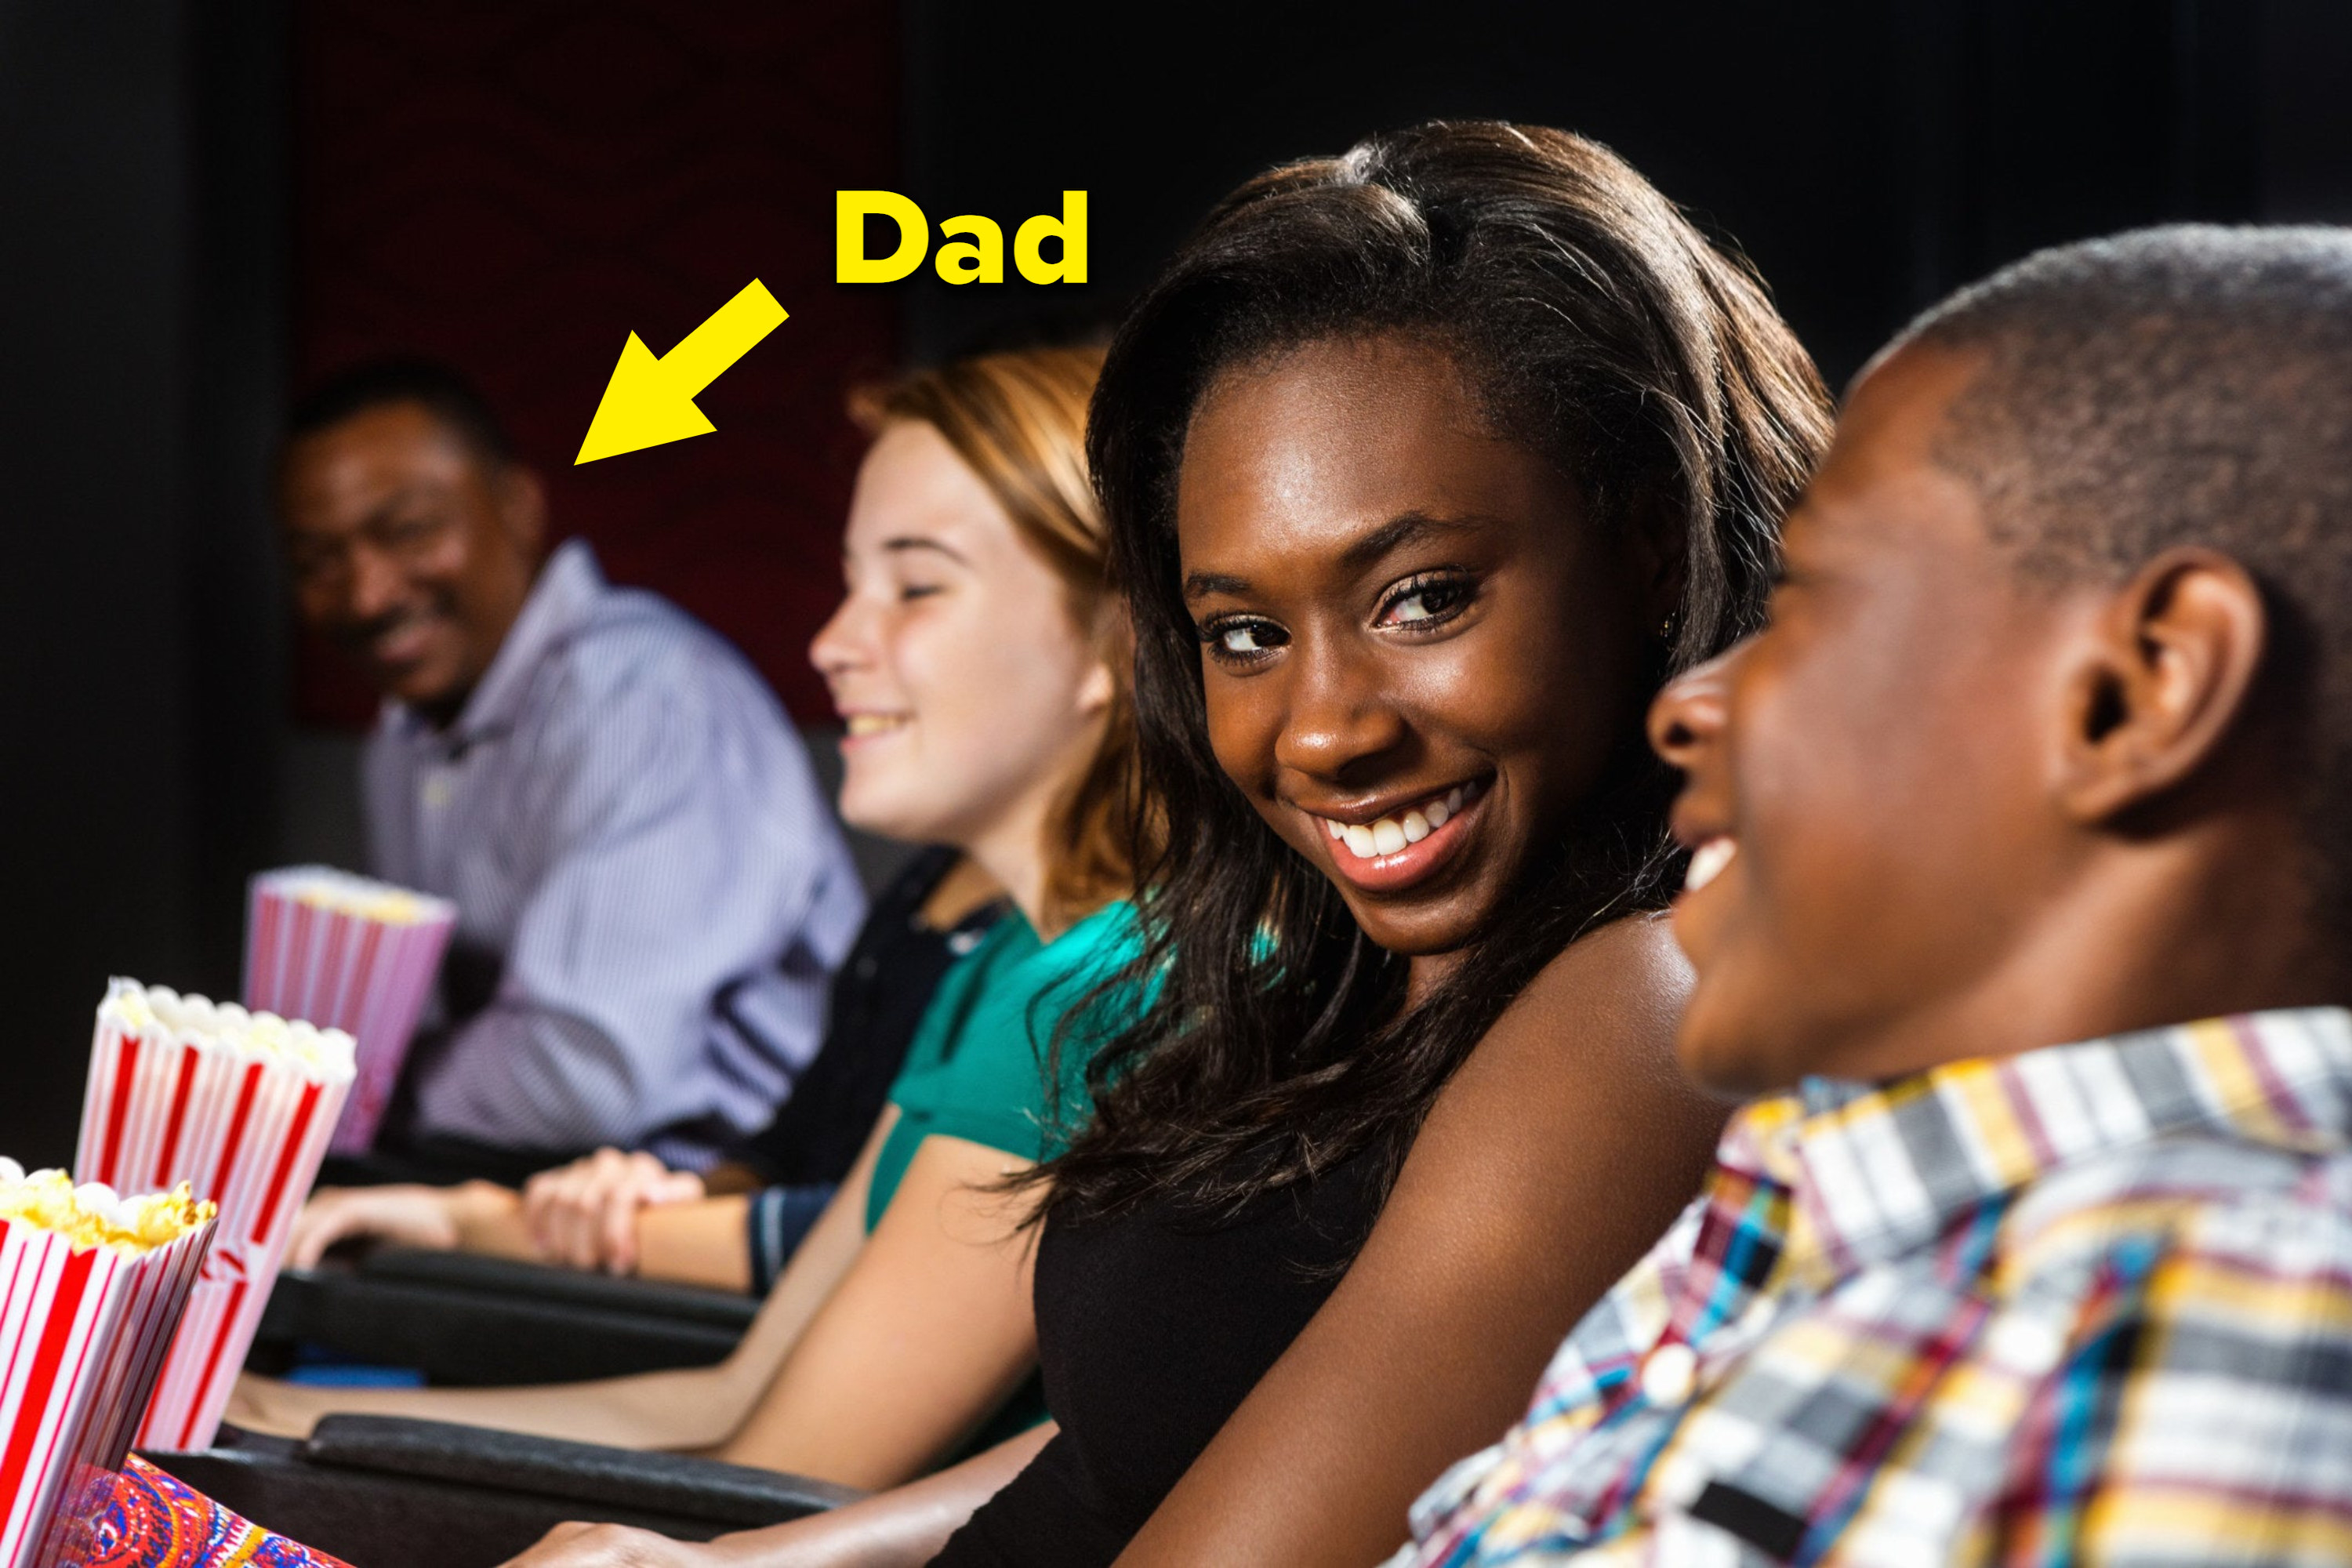 Two teens sit together in a movie as the girl's dad looks on